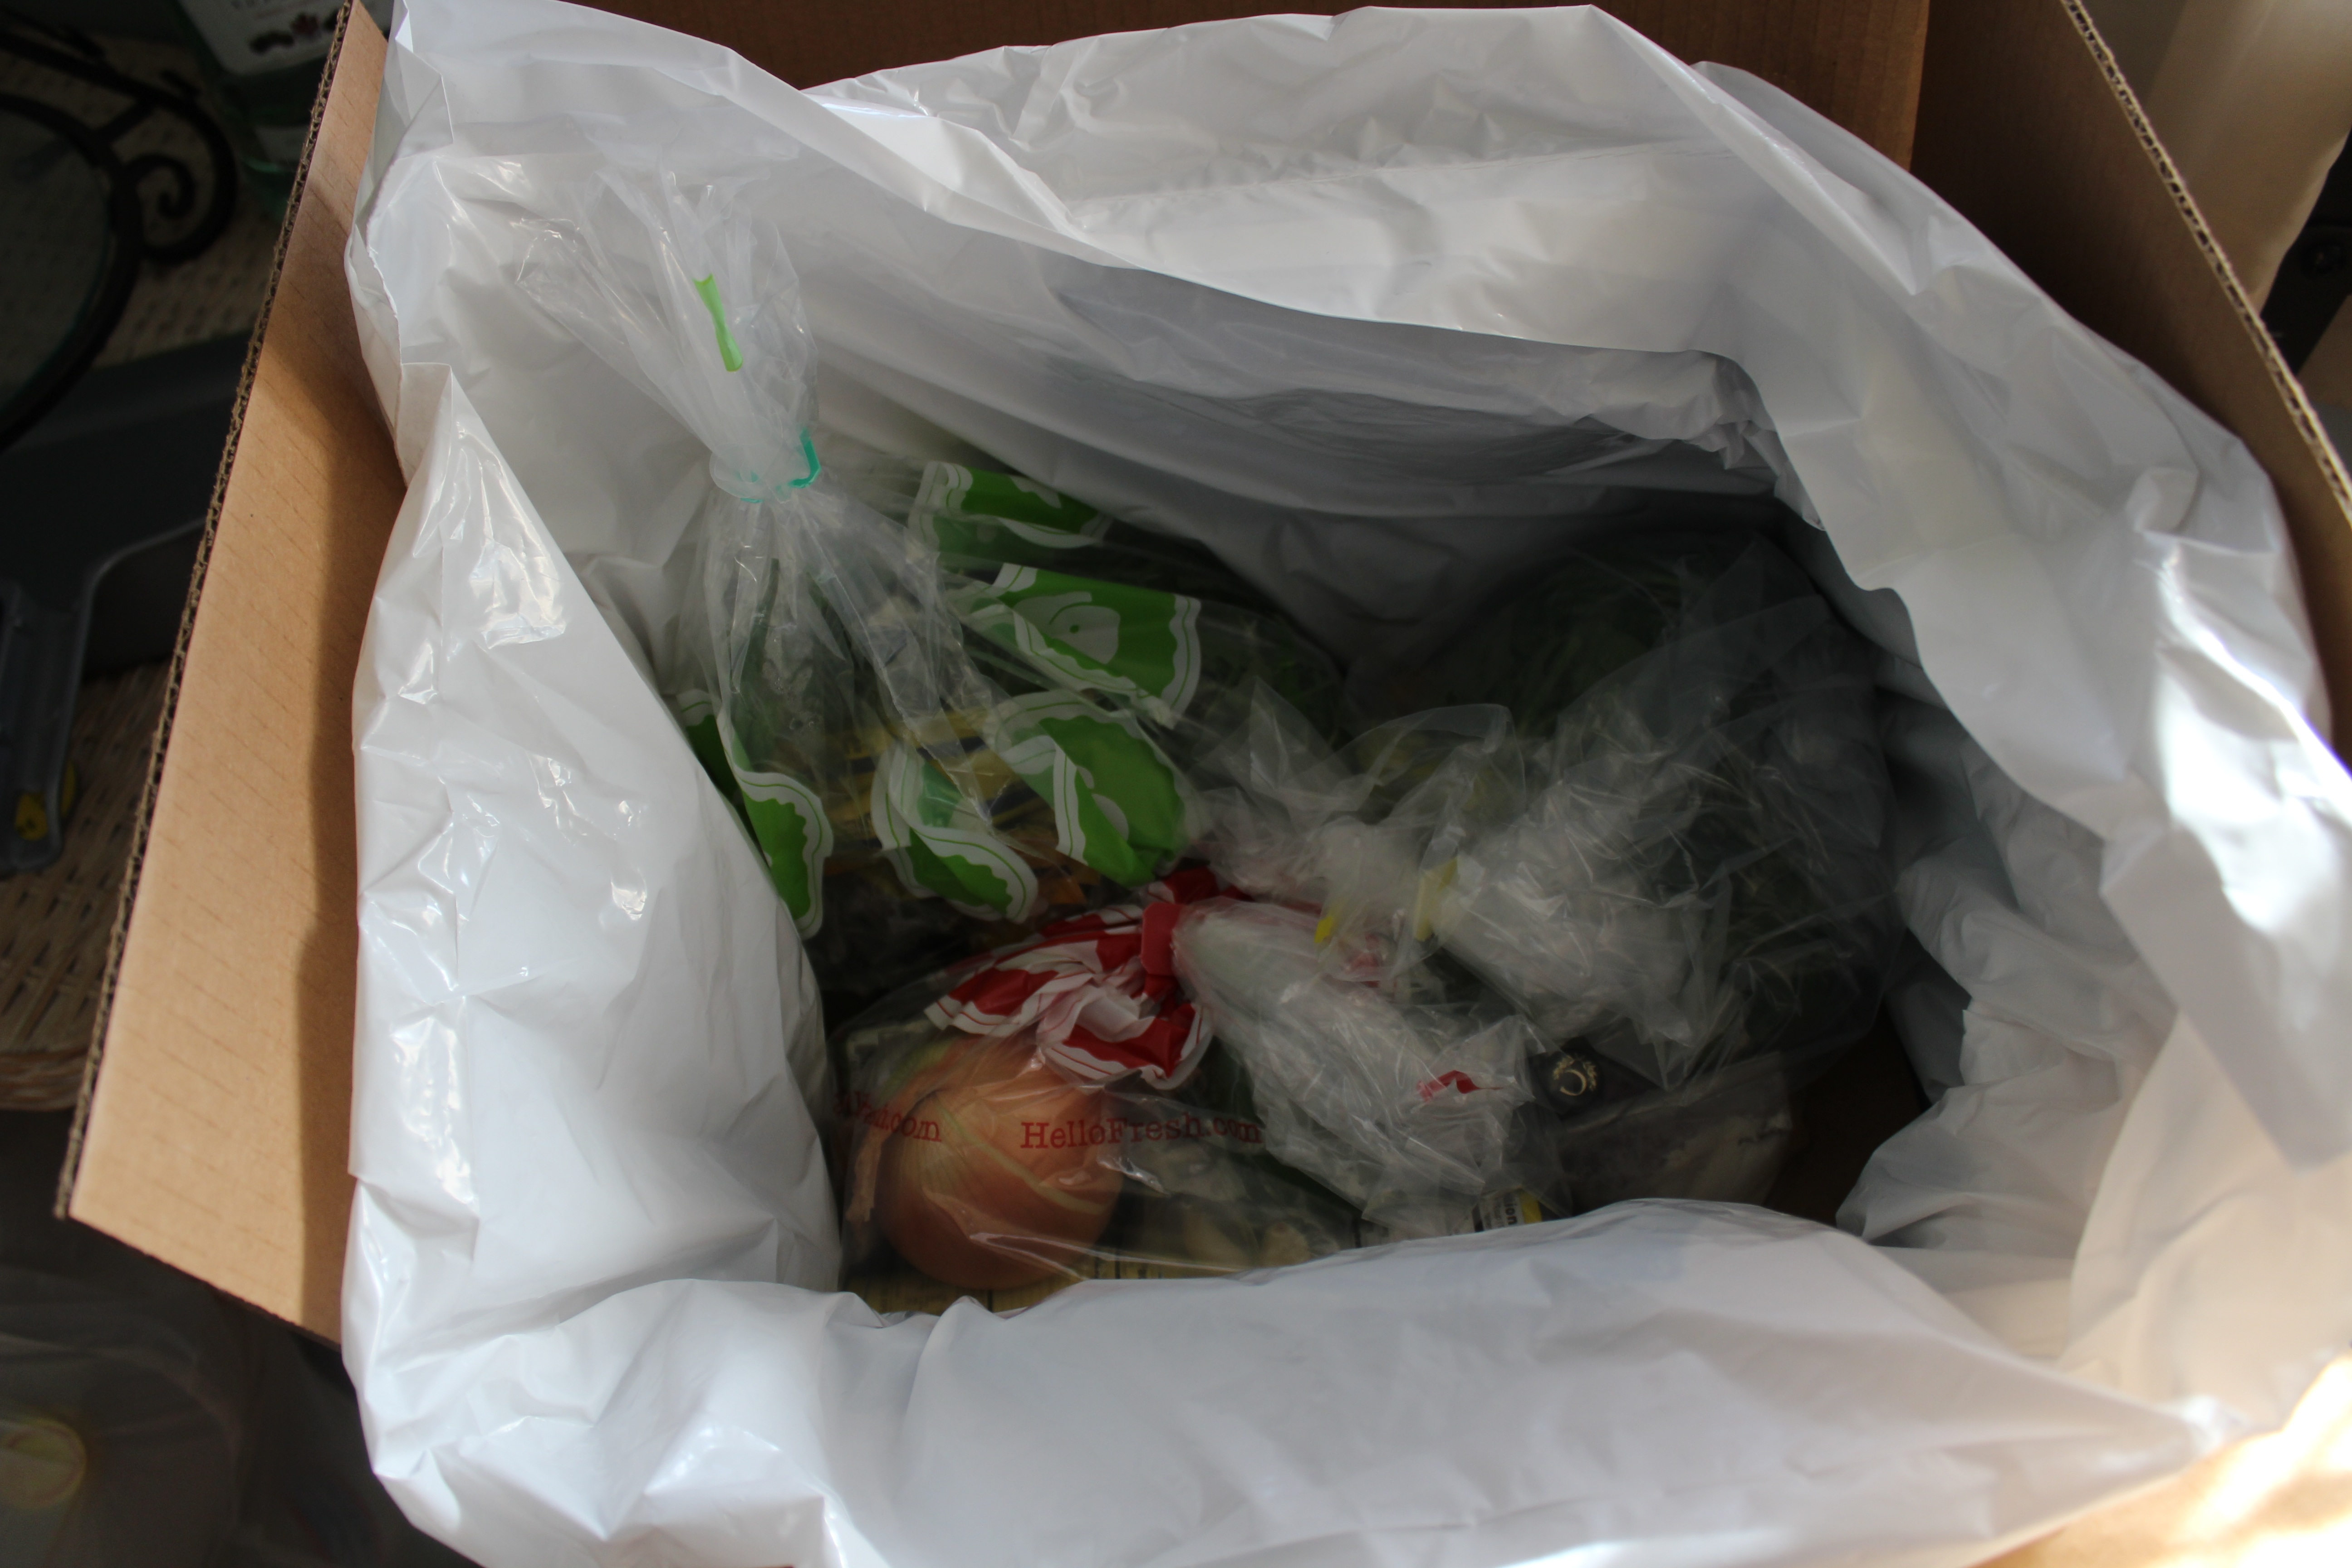 Blue apron or hello fresh - Blue Apron Waste Compared To Blue Apron That Uses Several Small Bags Hello Fresh Uses